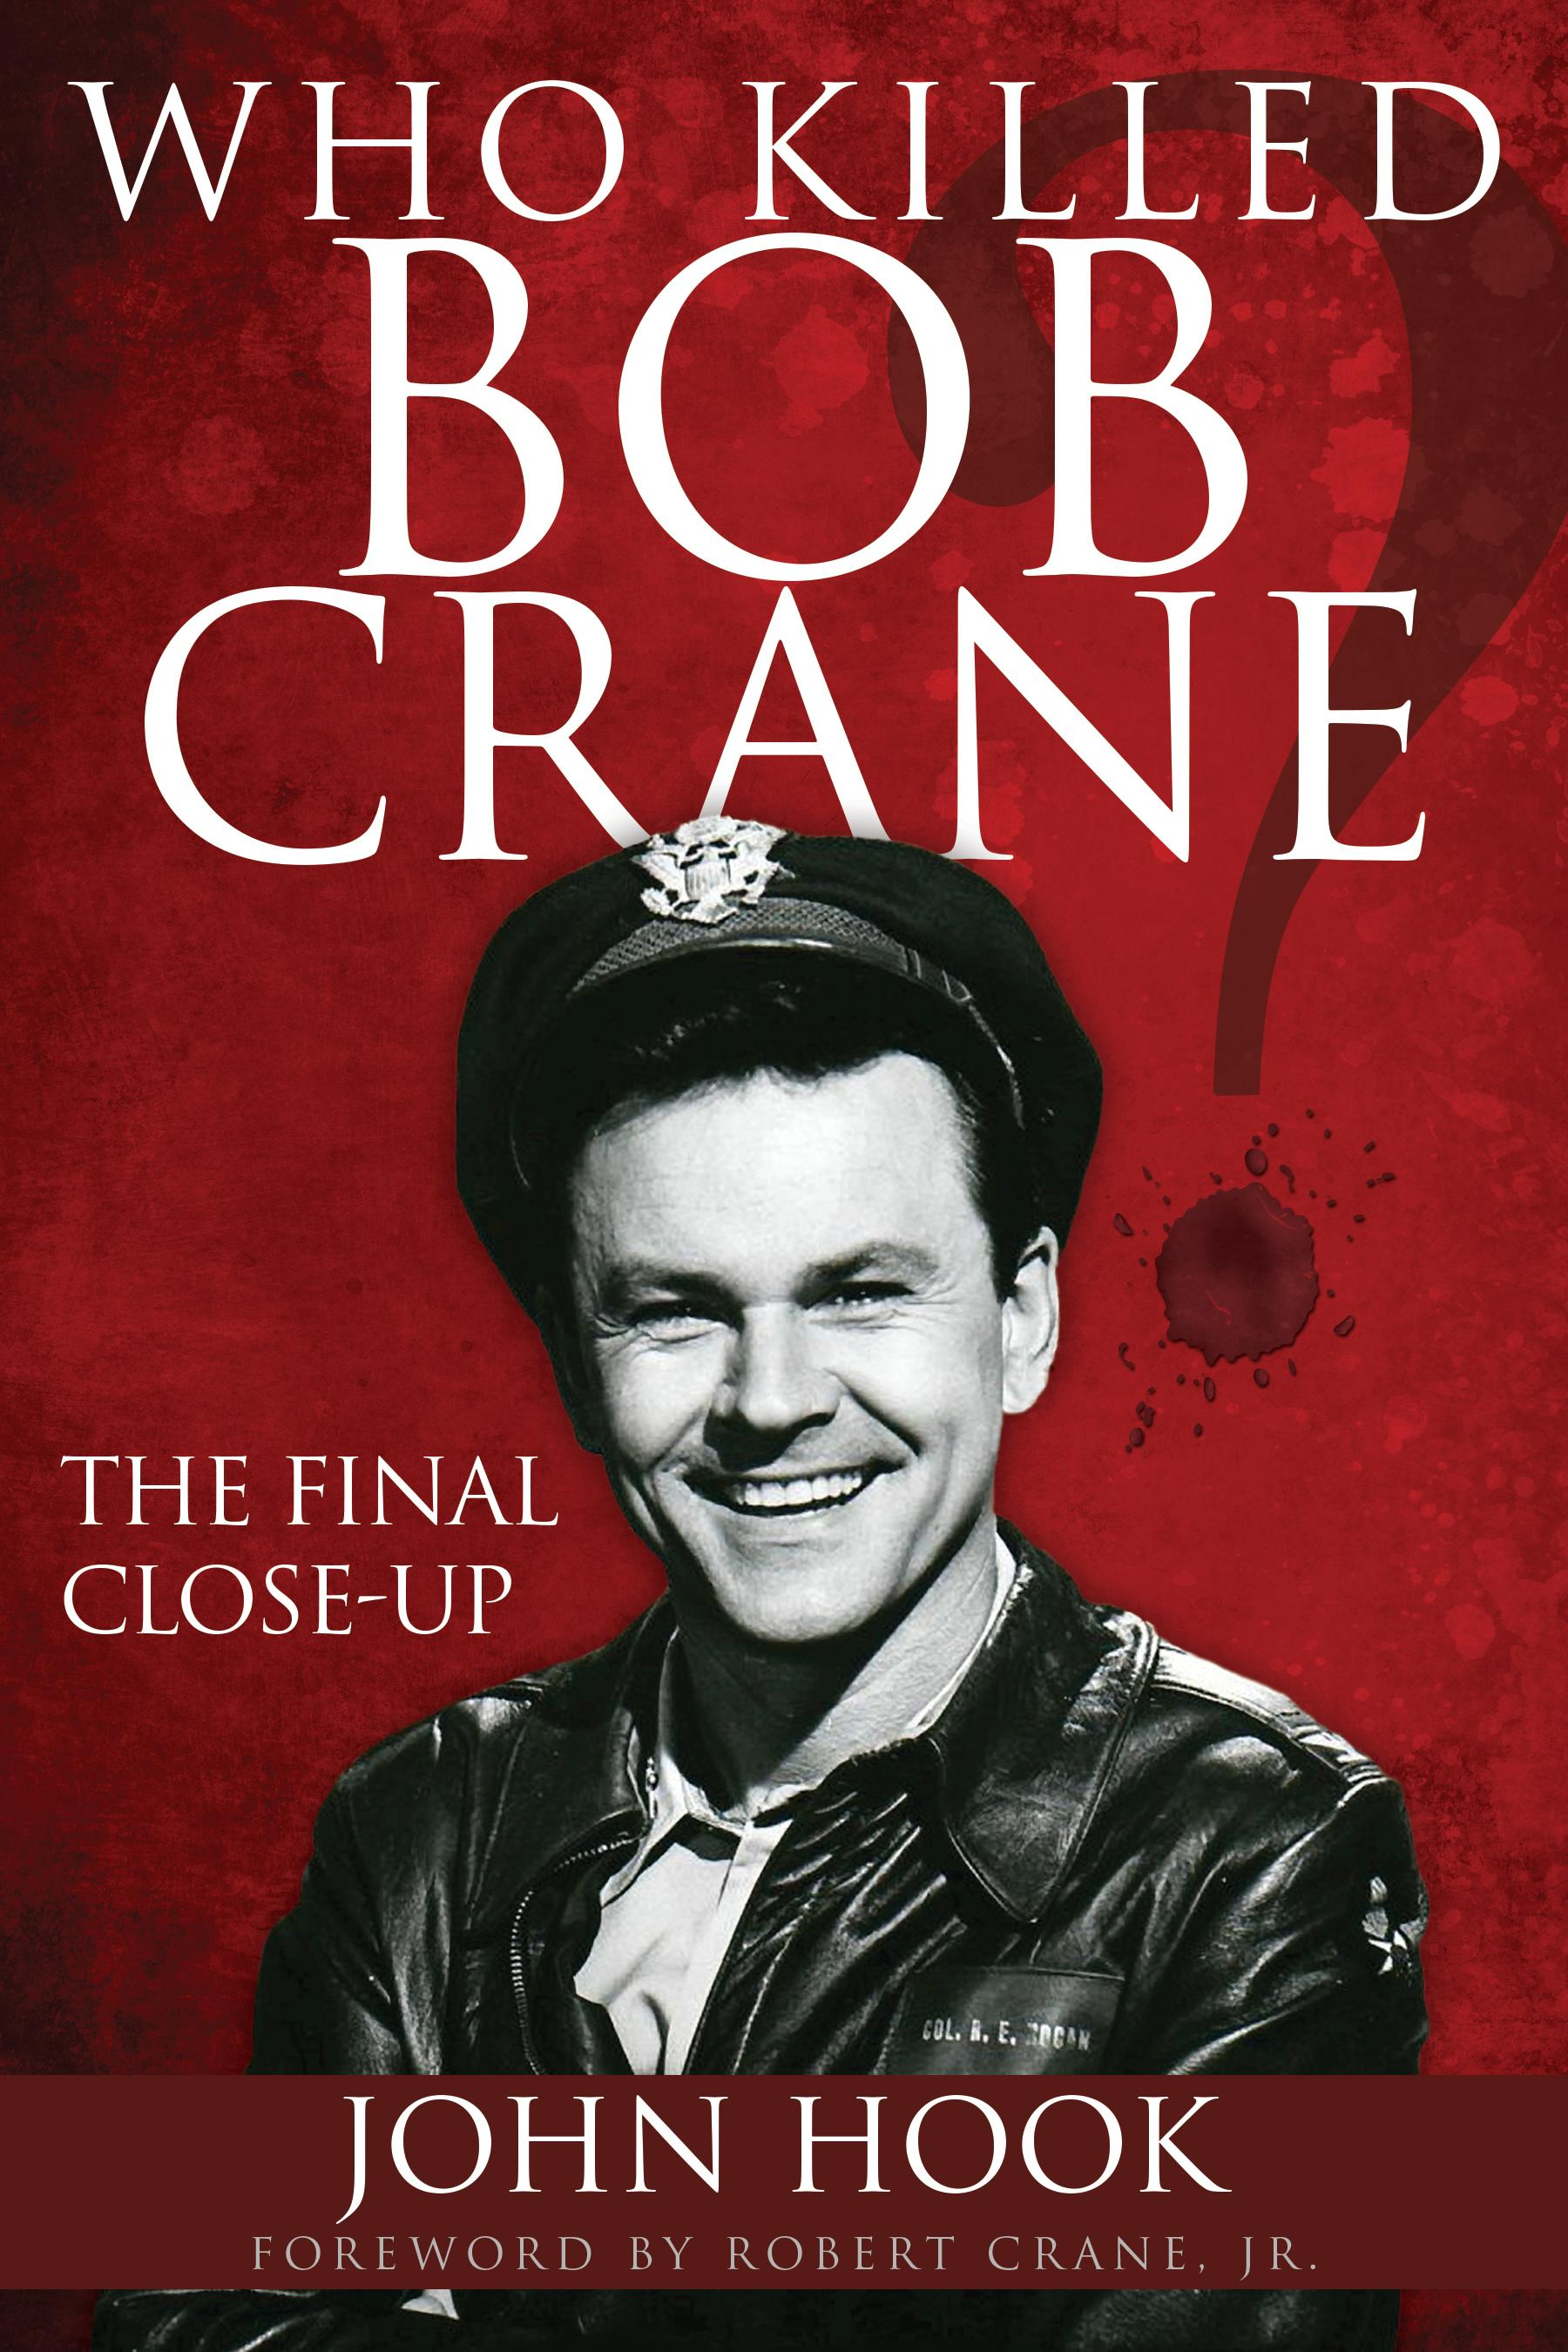 Who Killed Bob Crane? By John Hook